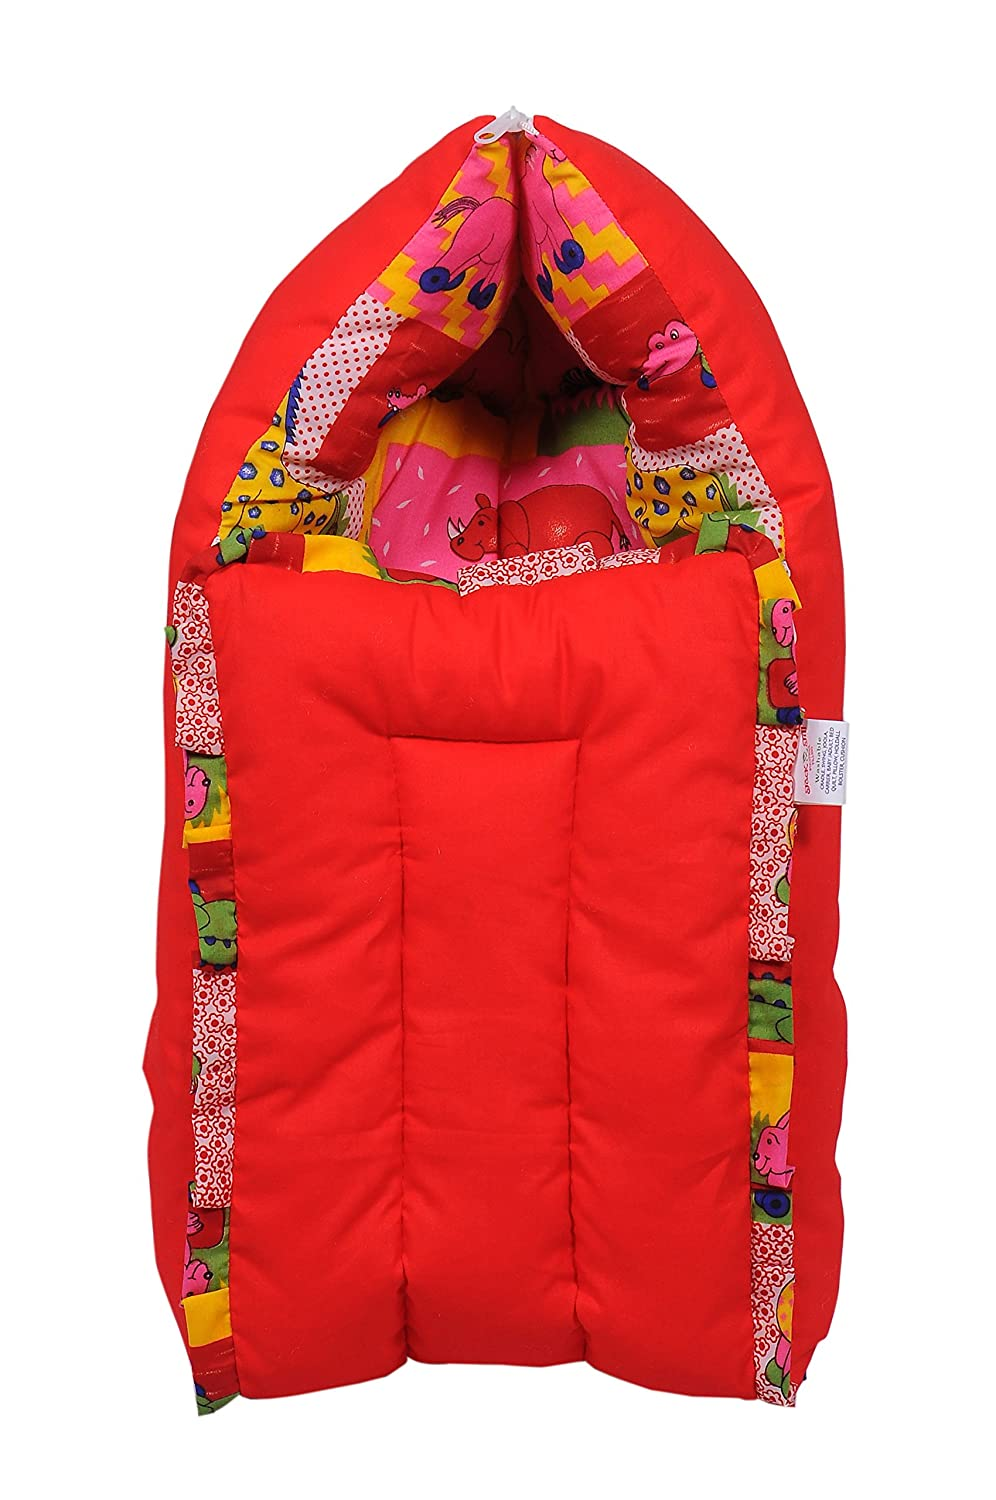 Buy Jack Jill Baby Bedding Set Bed Carrier Sleeping Bag New Born Just